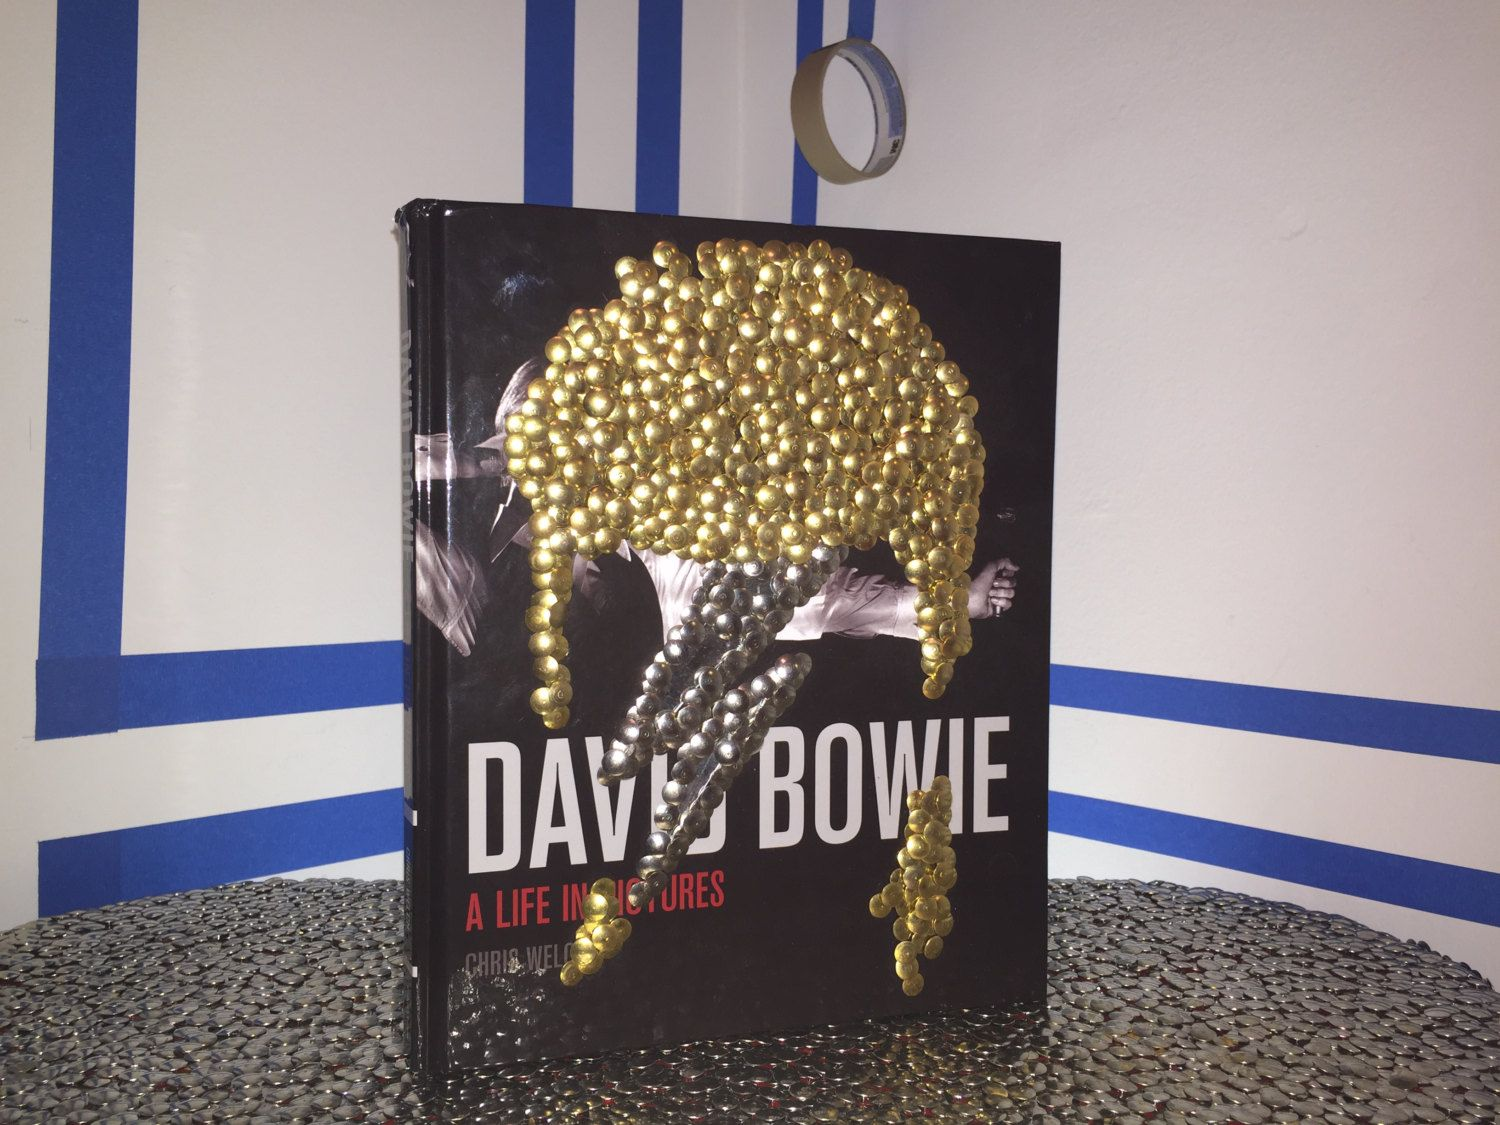 David Bowie Hand Gilded Coffee Table Book By The Bms Ziggy Stardust Music Photo Photography Rock Star Thebms On Etsy